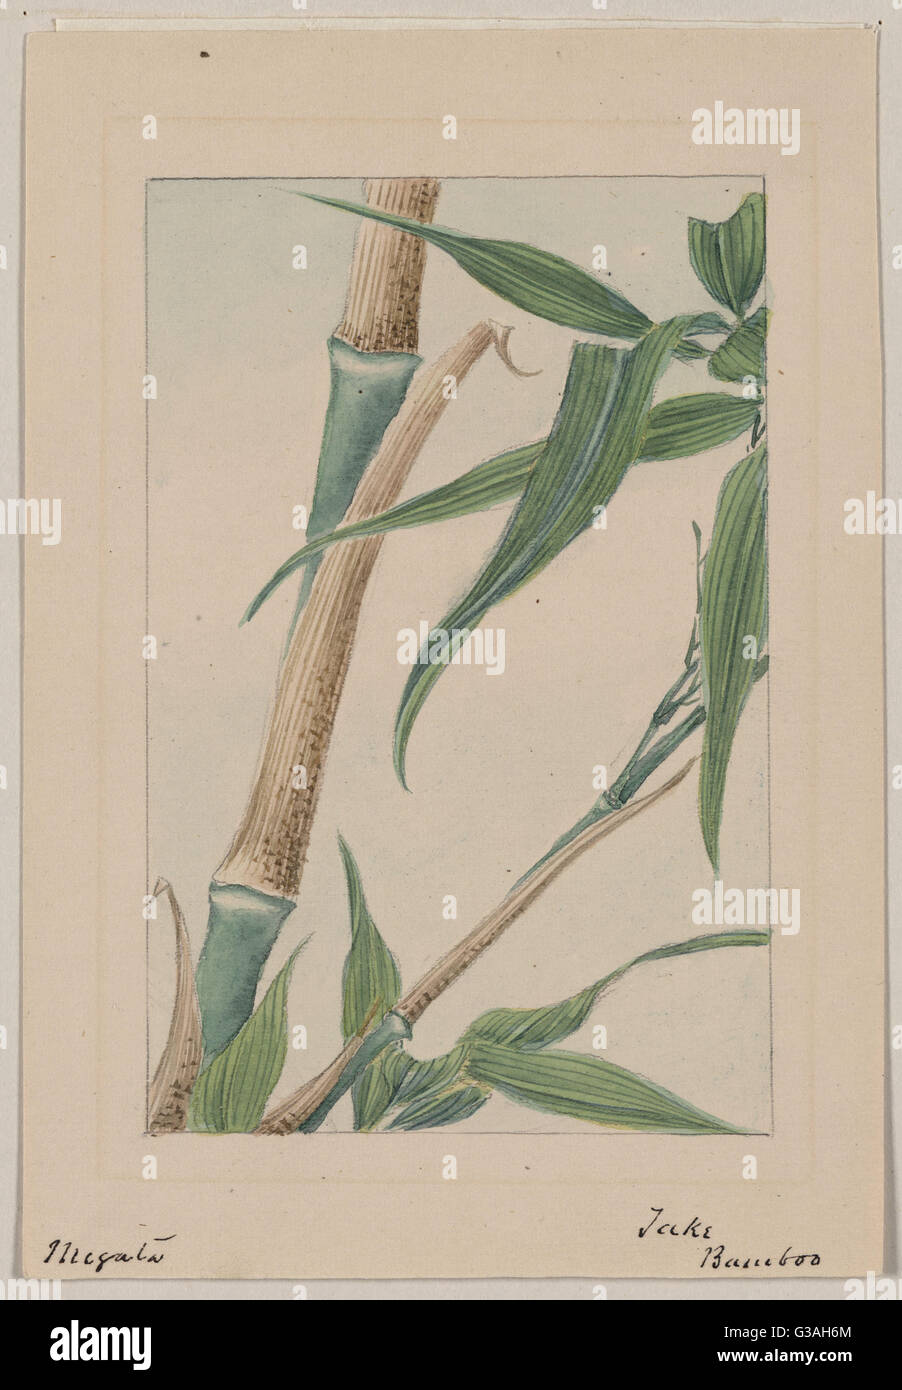 Take bamboo. Drawing shows stalk and leaves of the take bamboo plant. Date 187-. - Stock Image